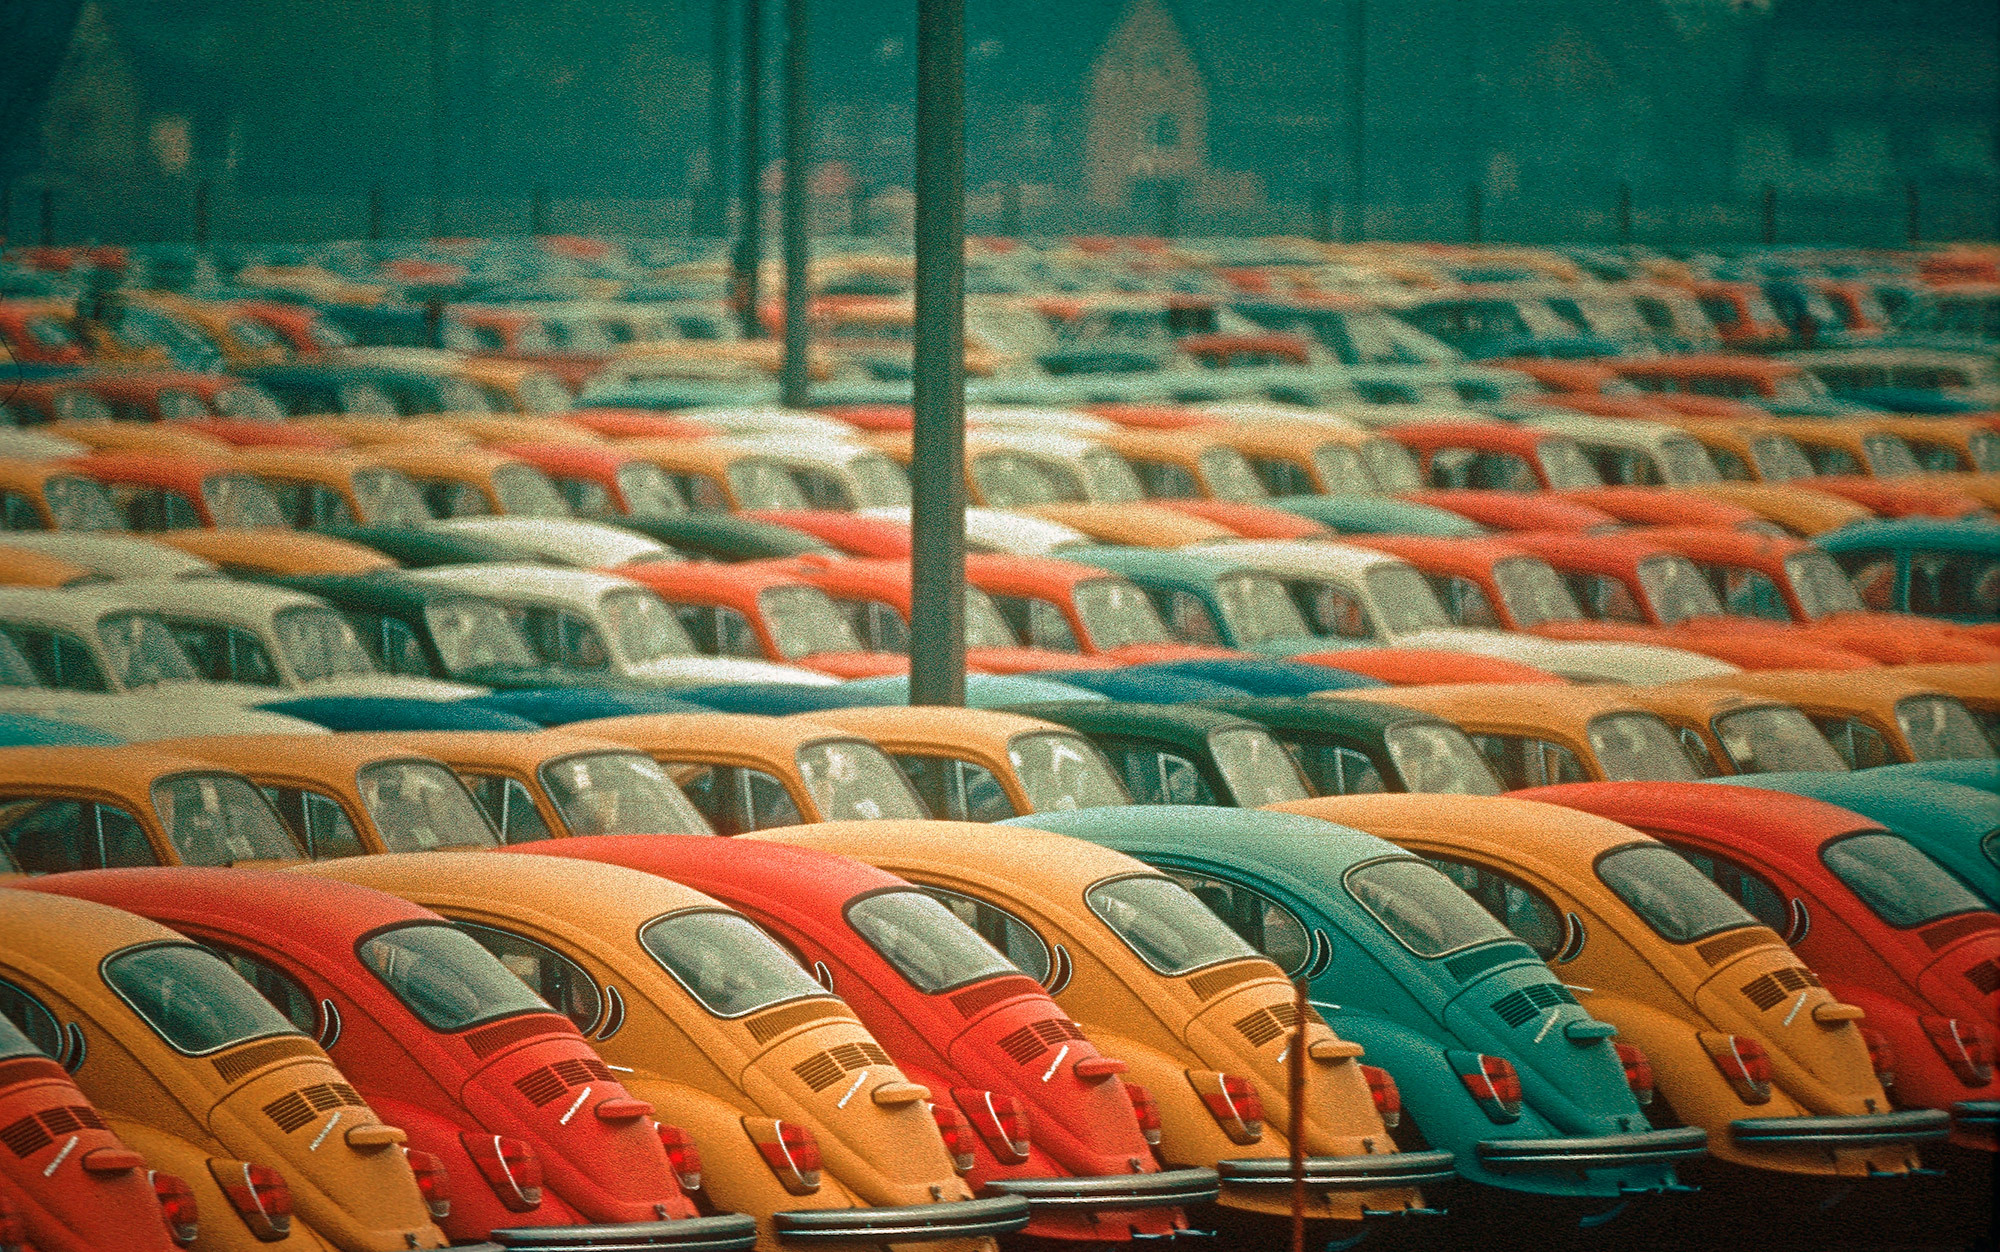 Resultado de imagem para Newly built Volkswagen Beetles ready for shipping from Hamburg in 1972. Photo by Thomas Hoepker/Magnum